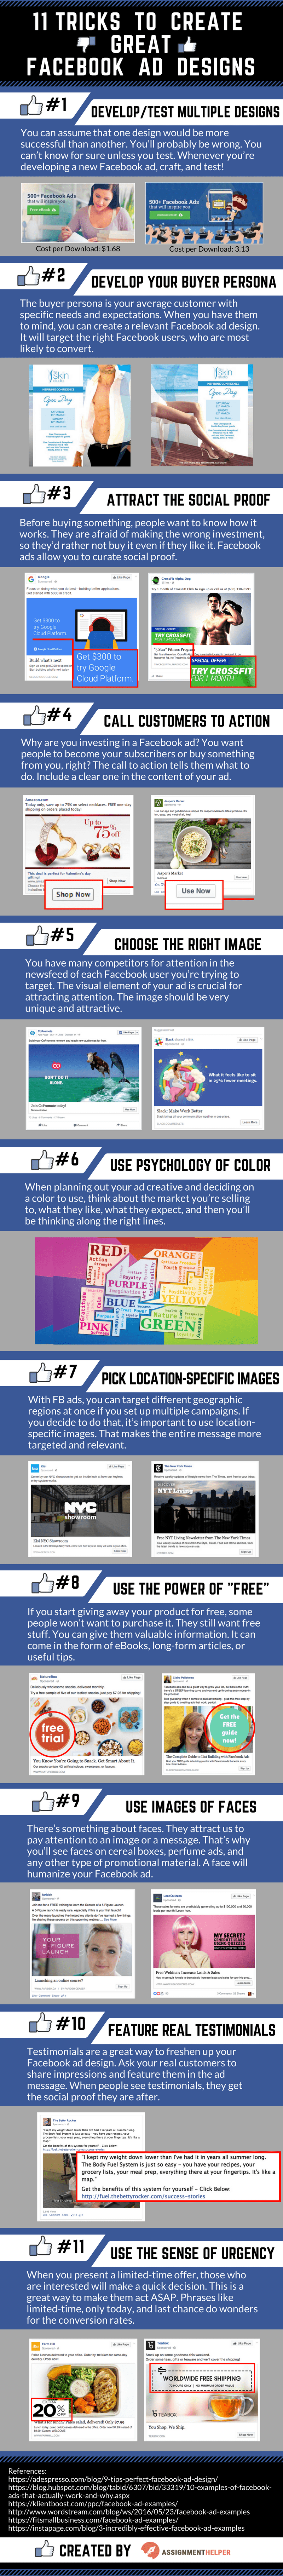 Facebook Ad Designs